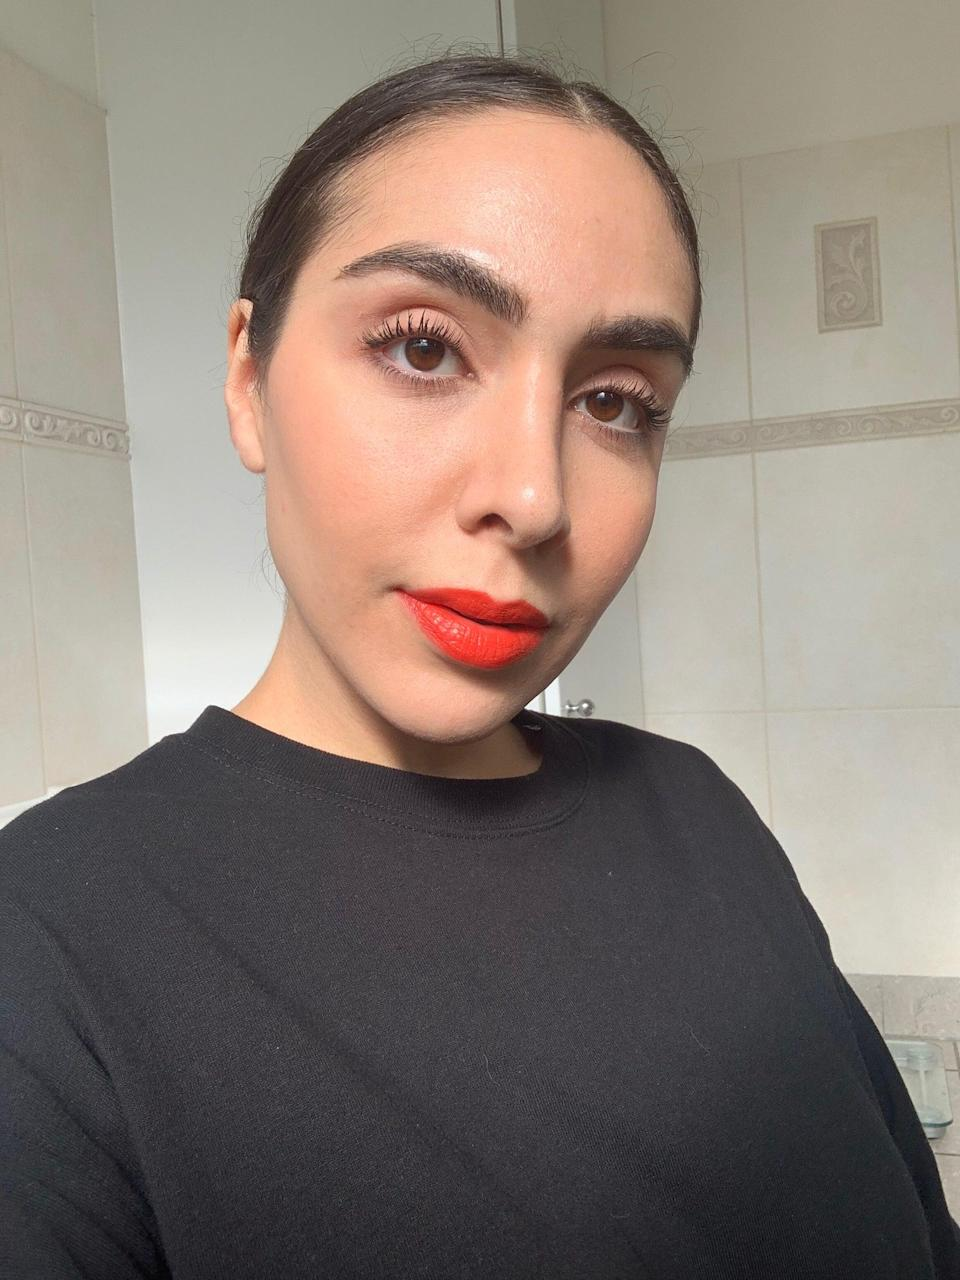 """I love this lipstick shade but you do need a lip brush to apply, otherwise it could end up everywhere, as I found out. It may be slightly glossy but the colour payoff is excellent and it sticks around without bleeding. Like all lip products which aren't matte, it will transfer, so I'd suggest blotting with a tissue first before reapplying to keep it in place for longer. I like the moisturising feel, too. This particular product is available in six colours, from nude to deep red. Use the <a href=""""https://trinnylondon.com/uk/match2me"""" rel=""""nofollow noopener"""" target=""""_blank"""" data-ylk=""""slk:Match2Me"""" class=""""link rapid-noclick-resp"""">Match2Me</a> service on the website to find your perfect shade.<br><br><strong>Trinny London</strong> Lip Luxe Lip Colour, $, available at <a href=""""https://trinnylondon.com/uk/products/lip-luxe?variant=swainy"""" rel=""""nofollow noopener"""" target=""""_blank"""" data-ylk=""""slk:Trinny London"""" class=""""link rapid-noclick-resp"""">Trinny London</a>"""